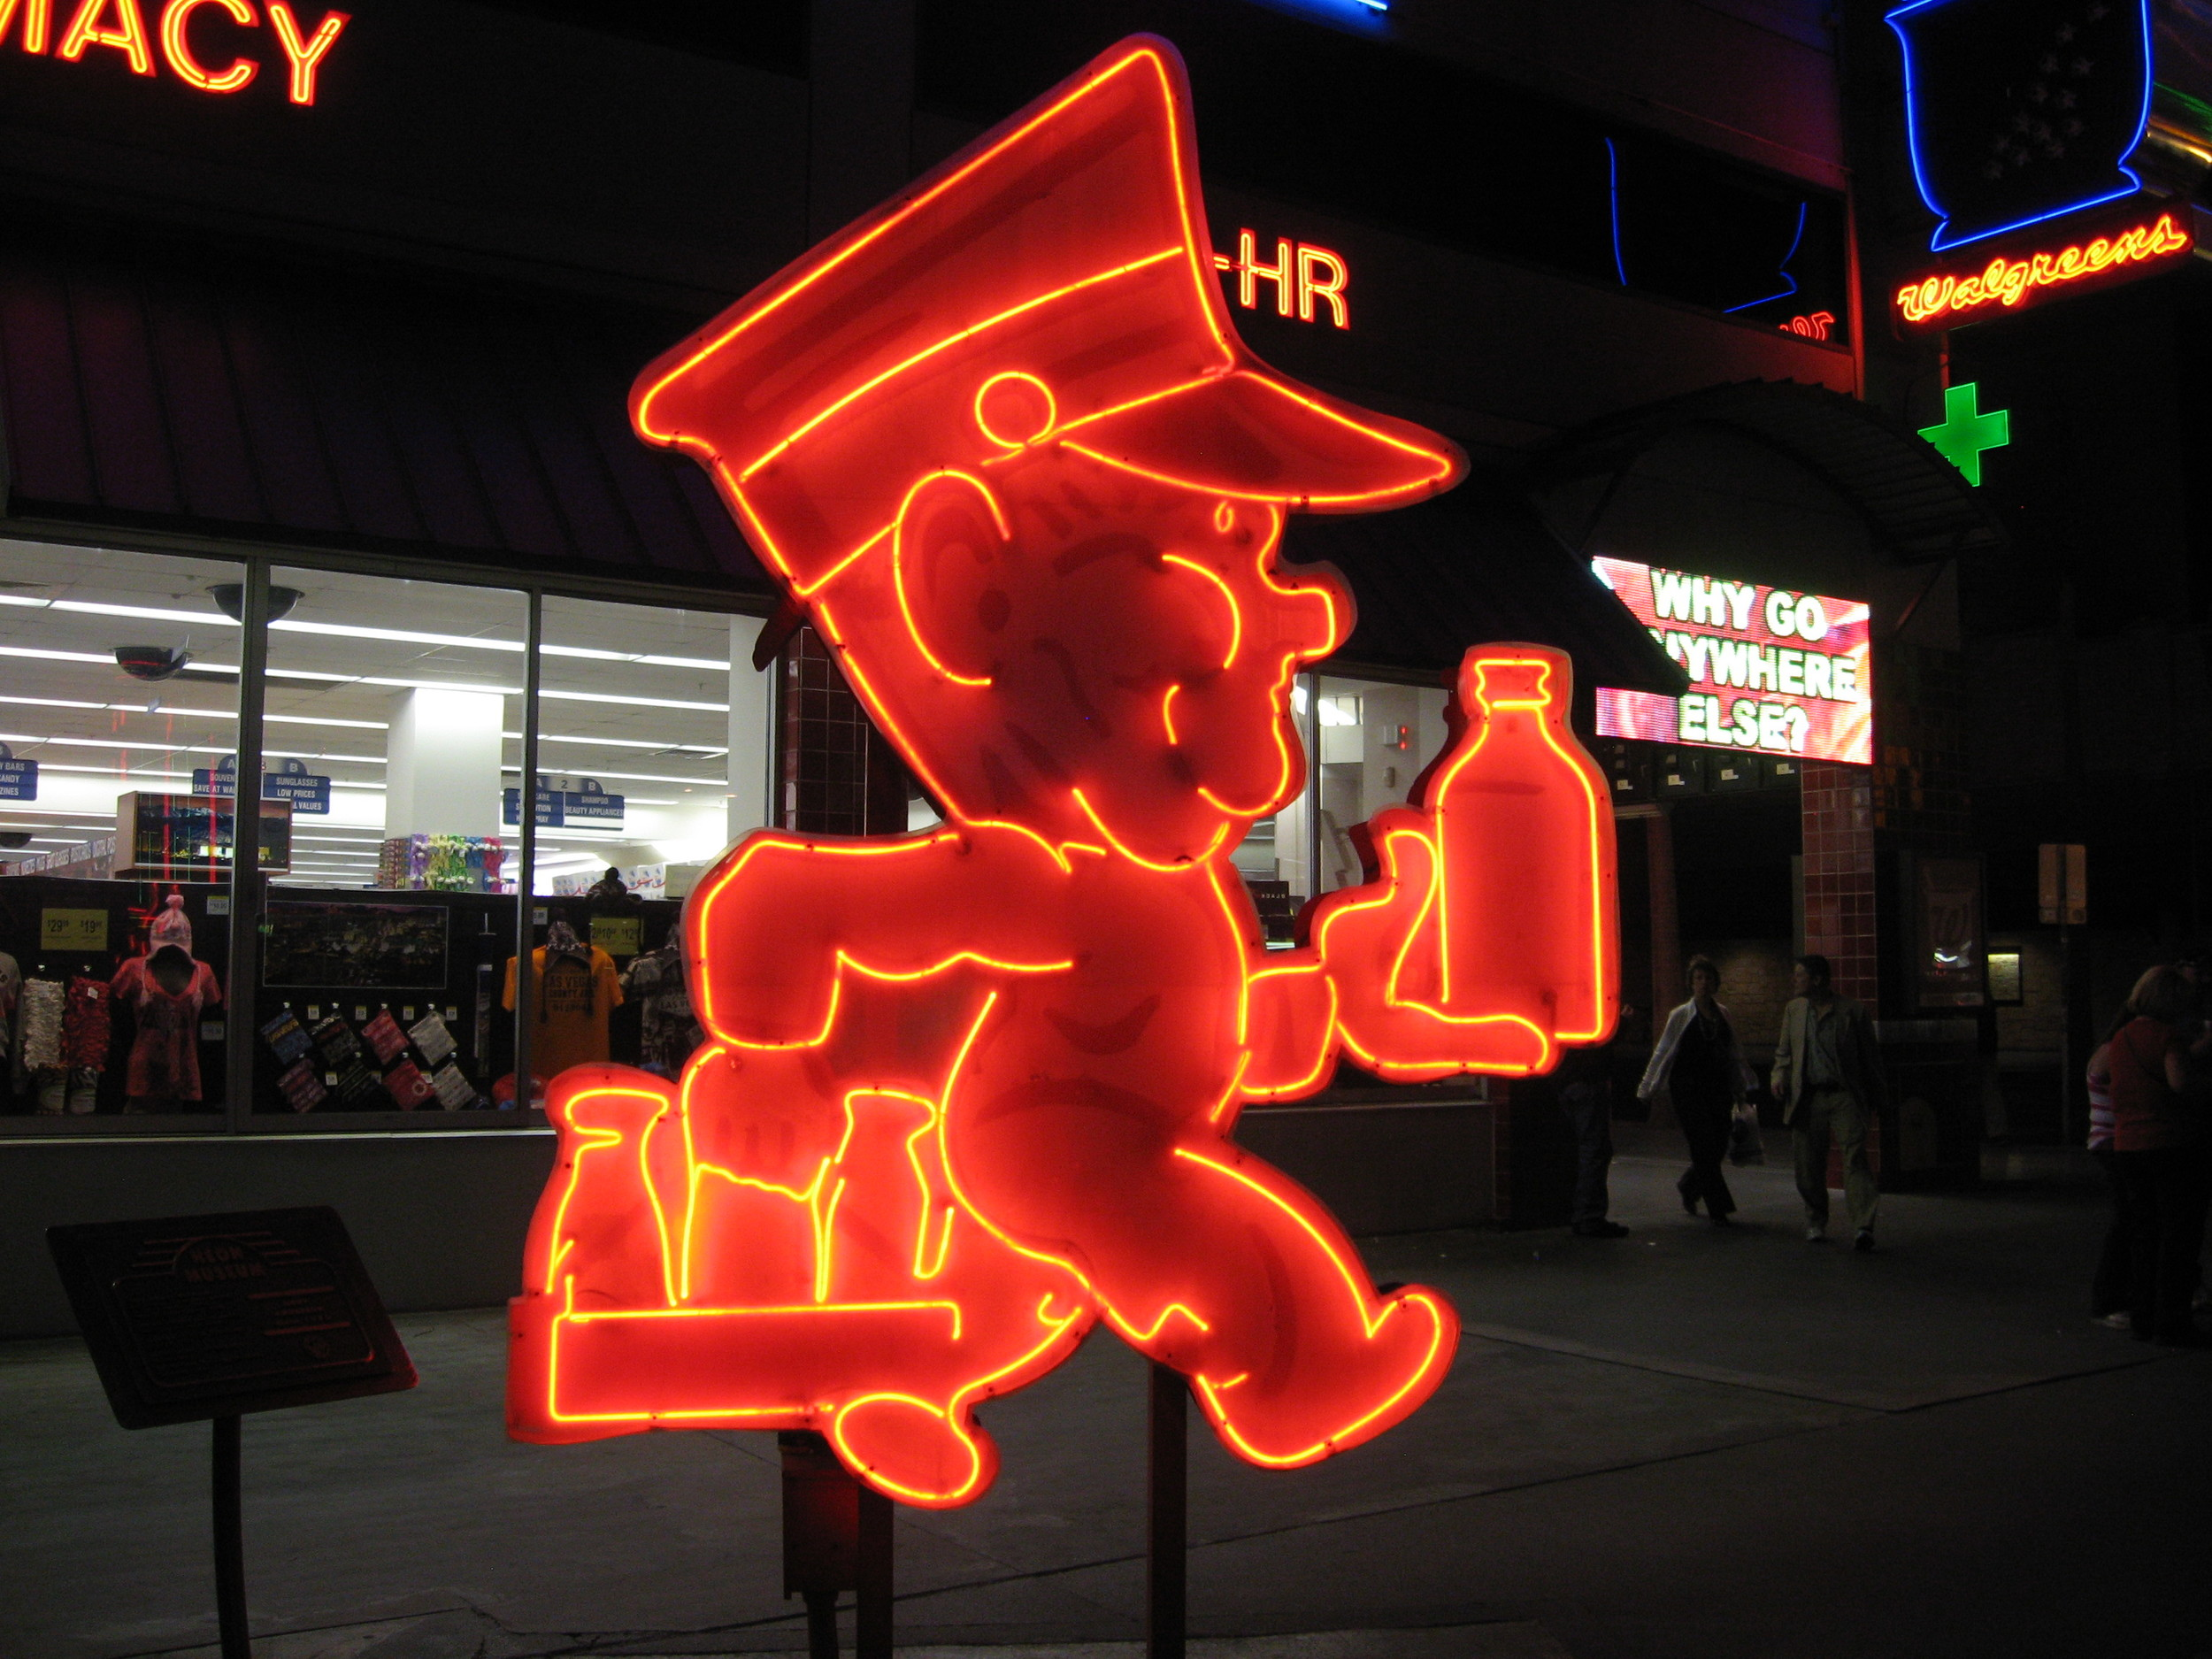 Love the link between cartoons and neon characters.